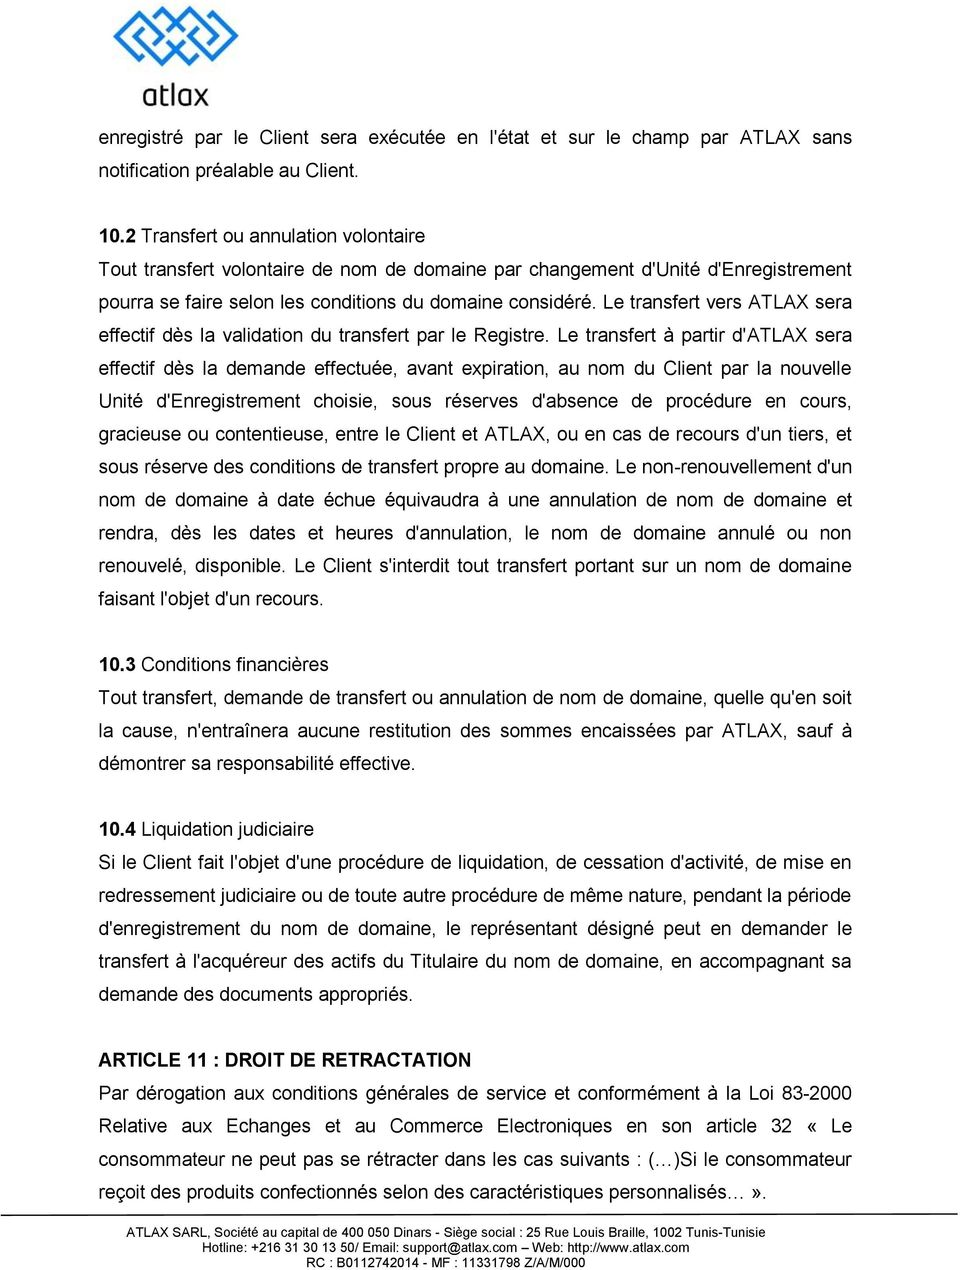 Le transfert vers ATLAX sera effectif dès la validation du transfert par le Registre.